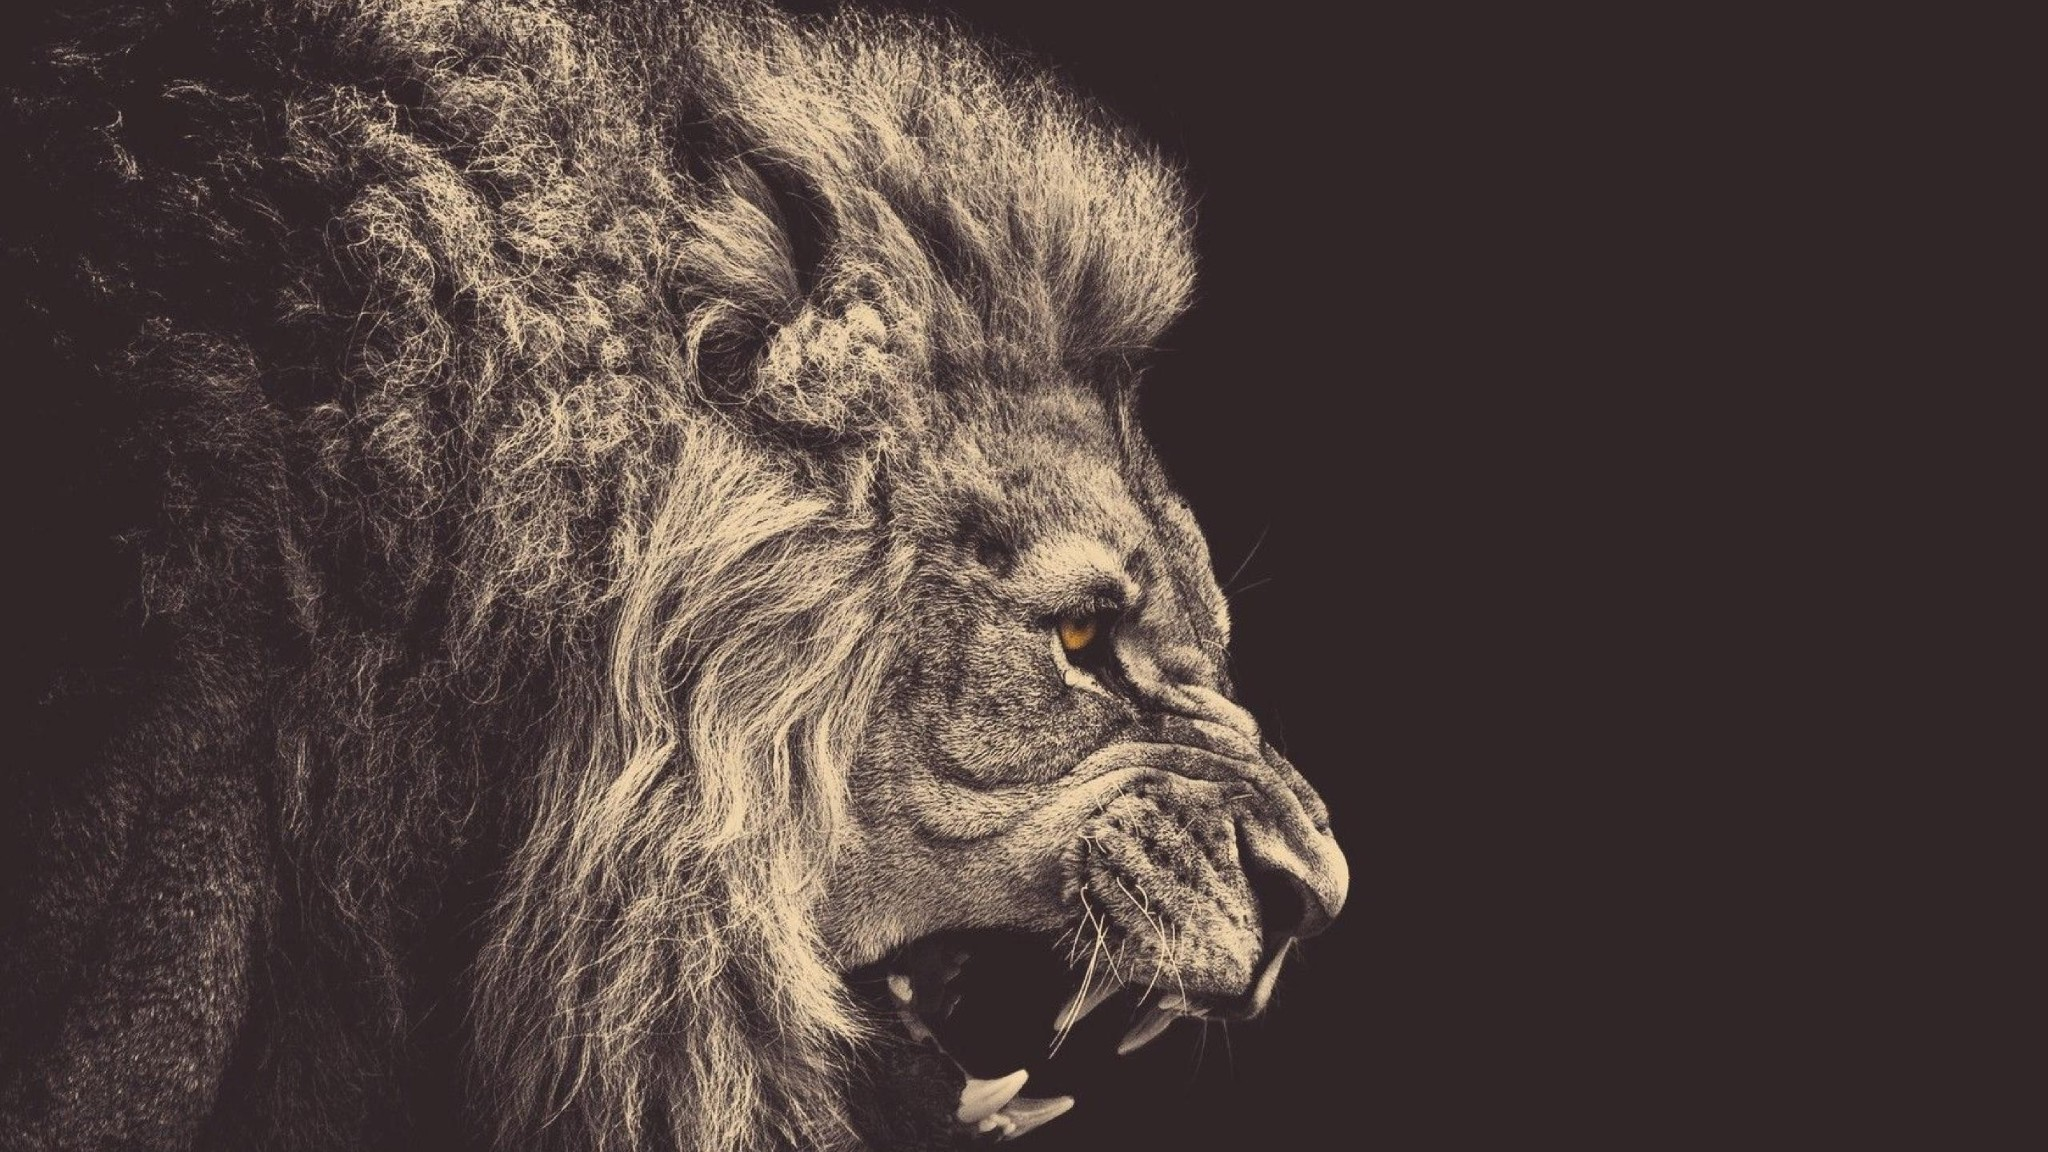 2048x1152 Download Lion, Mane, Big Cat Wallpaper